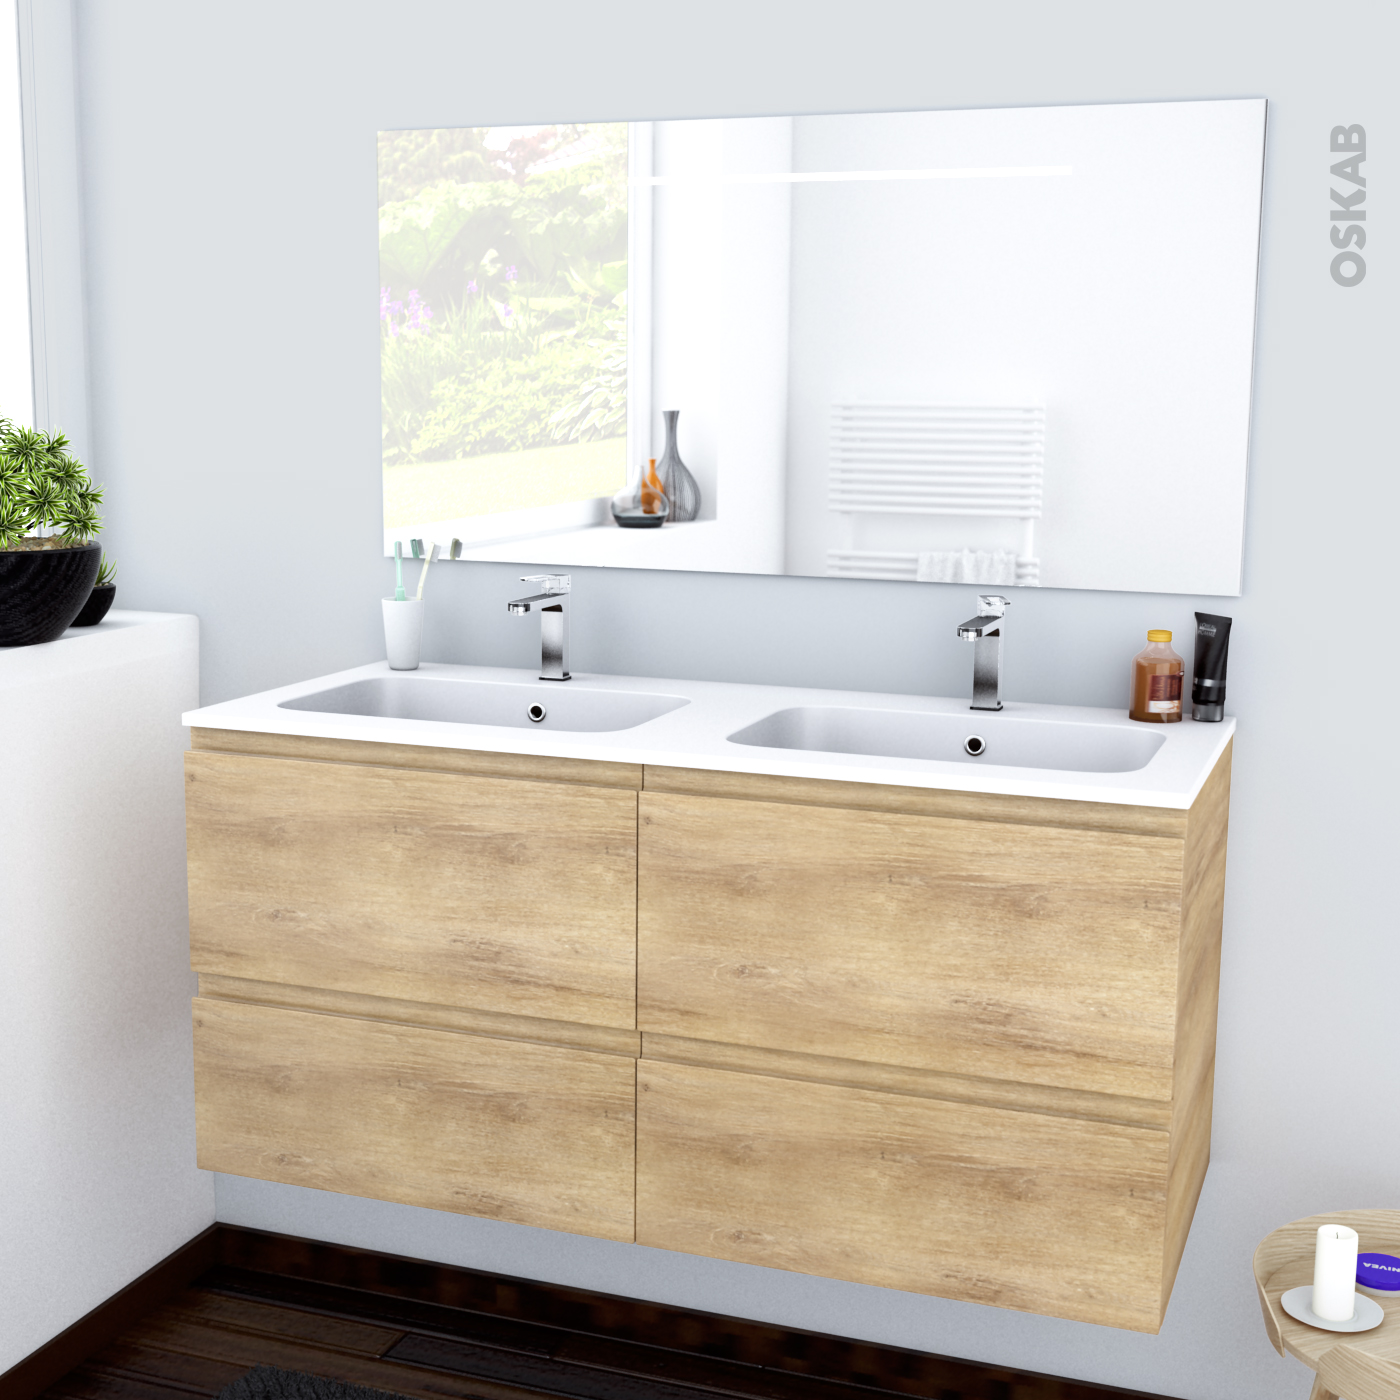 Lavabo double vasque retro hudson reed ensemble meuble de for Ensemble vasque salle de bain